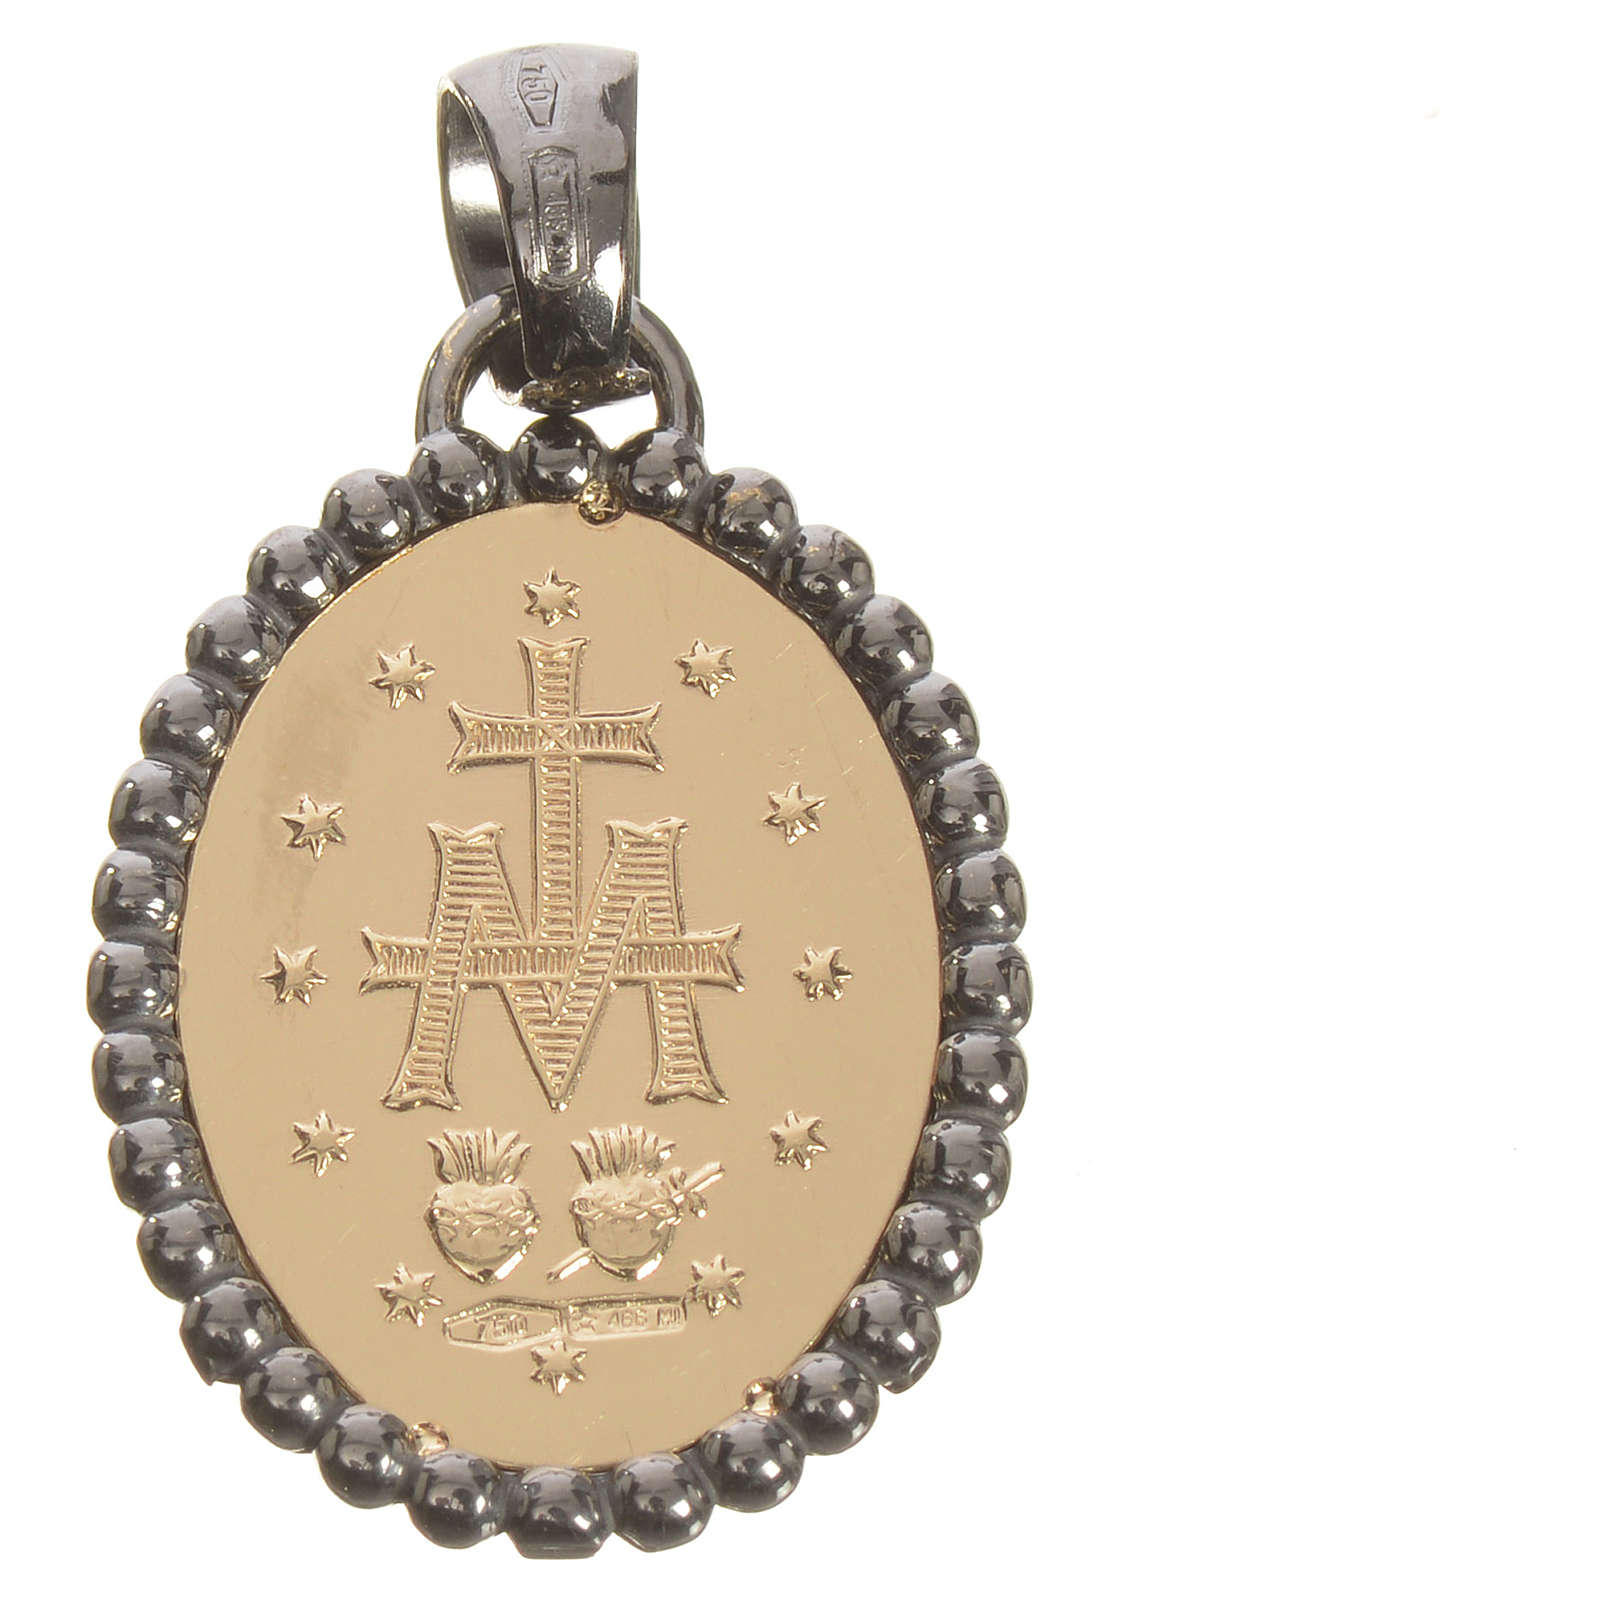 Miraculous medal in 750 gold with dark outline 2.74gr 4